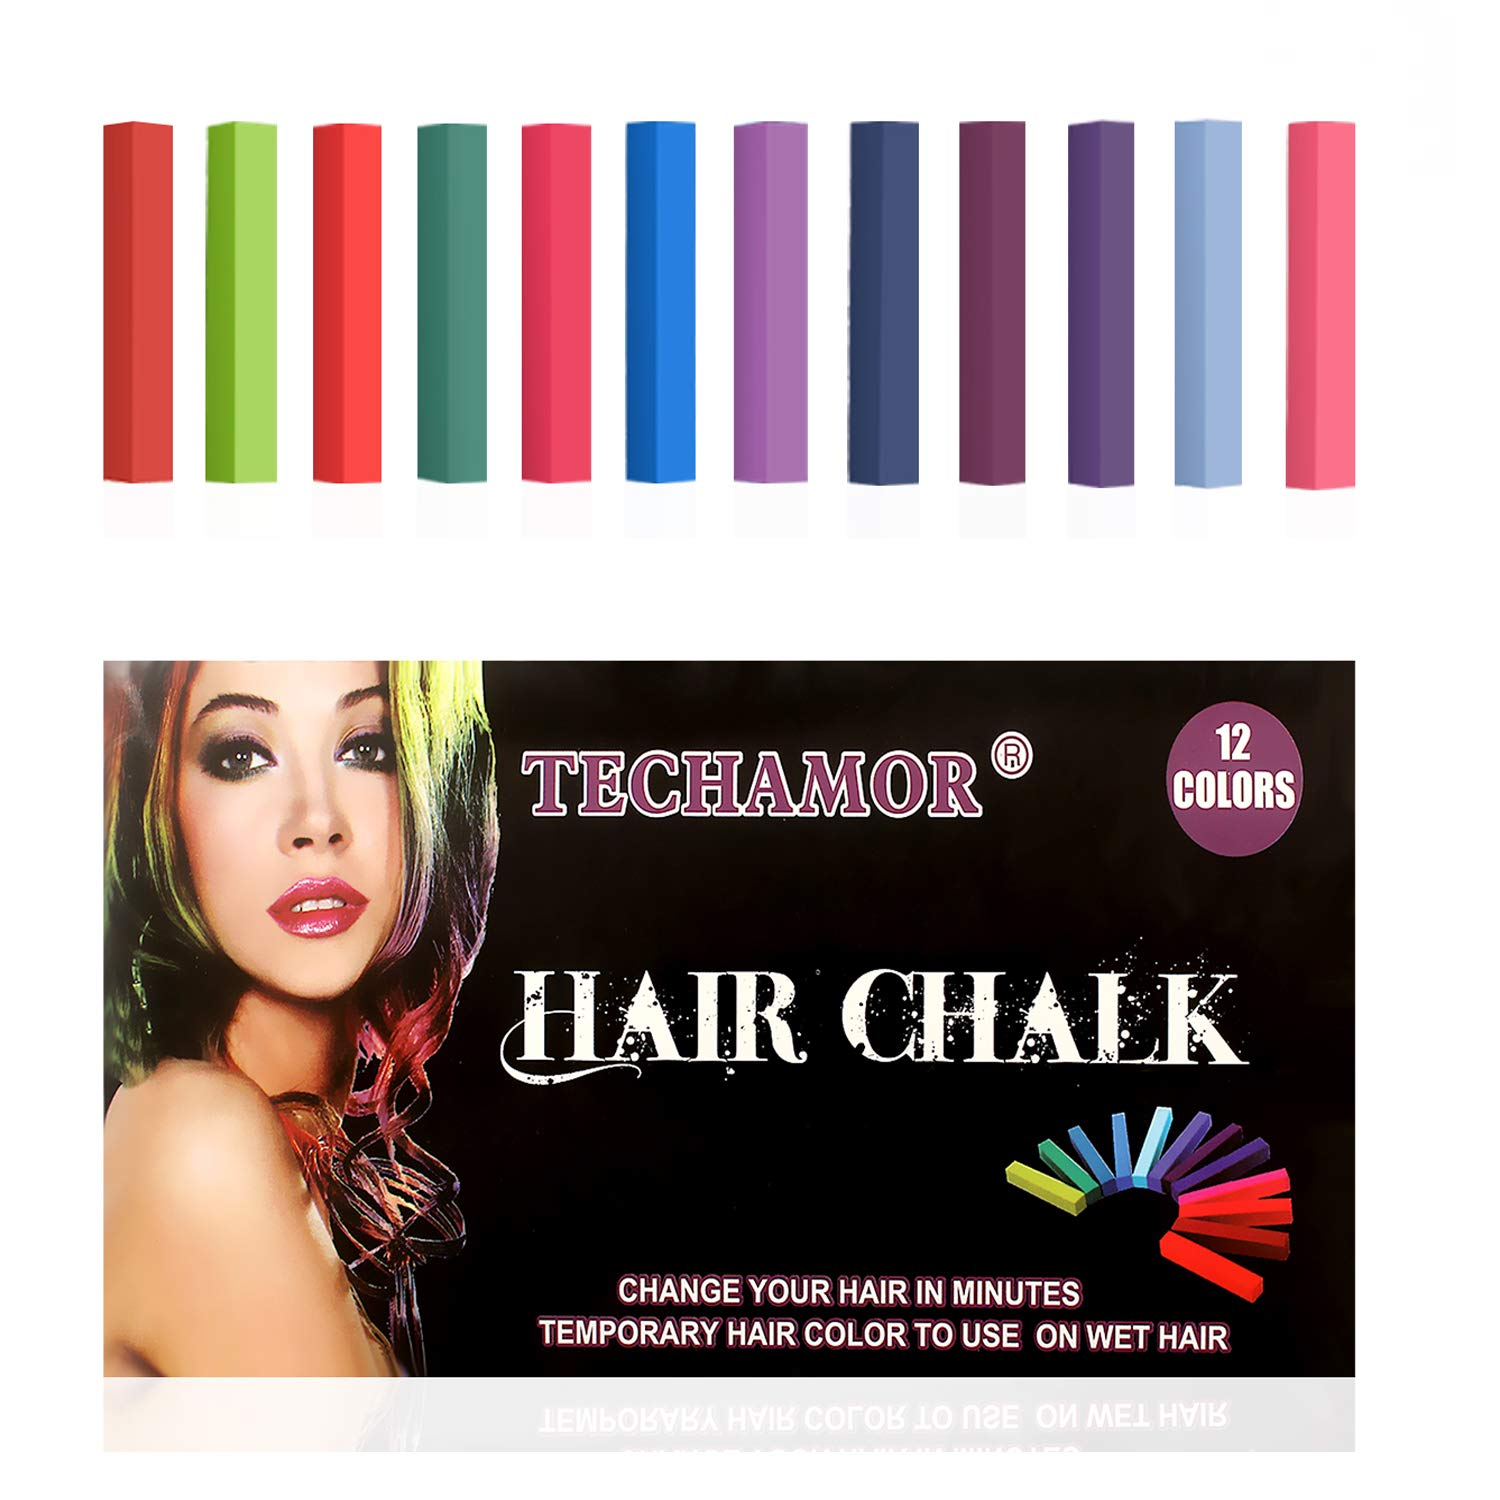 Hair Chalk,Hair Chalk Pen,Temporary Hair Color Chalk Set,No-Toxic Washable Hair Dye for Kids Hair Dyeing Party,Birthday Gifts For Girls,women, Men,12 Bright Colors